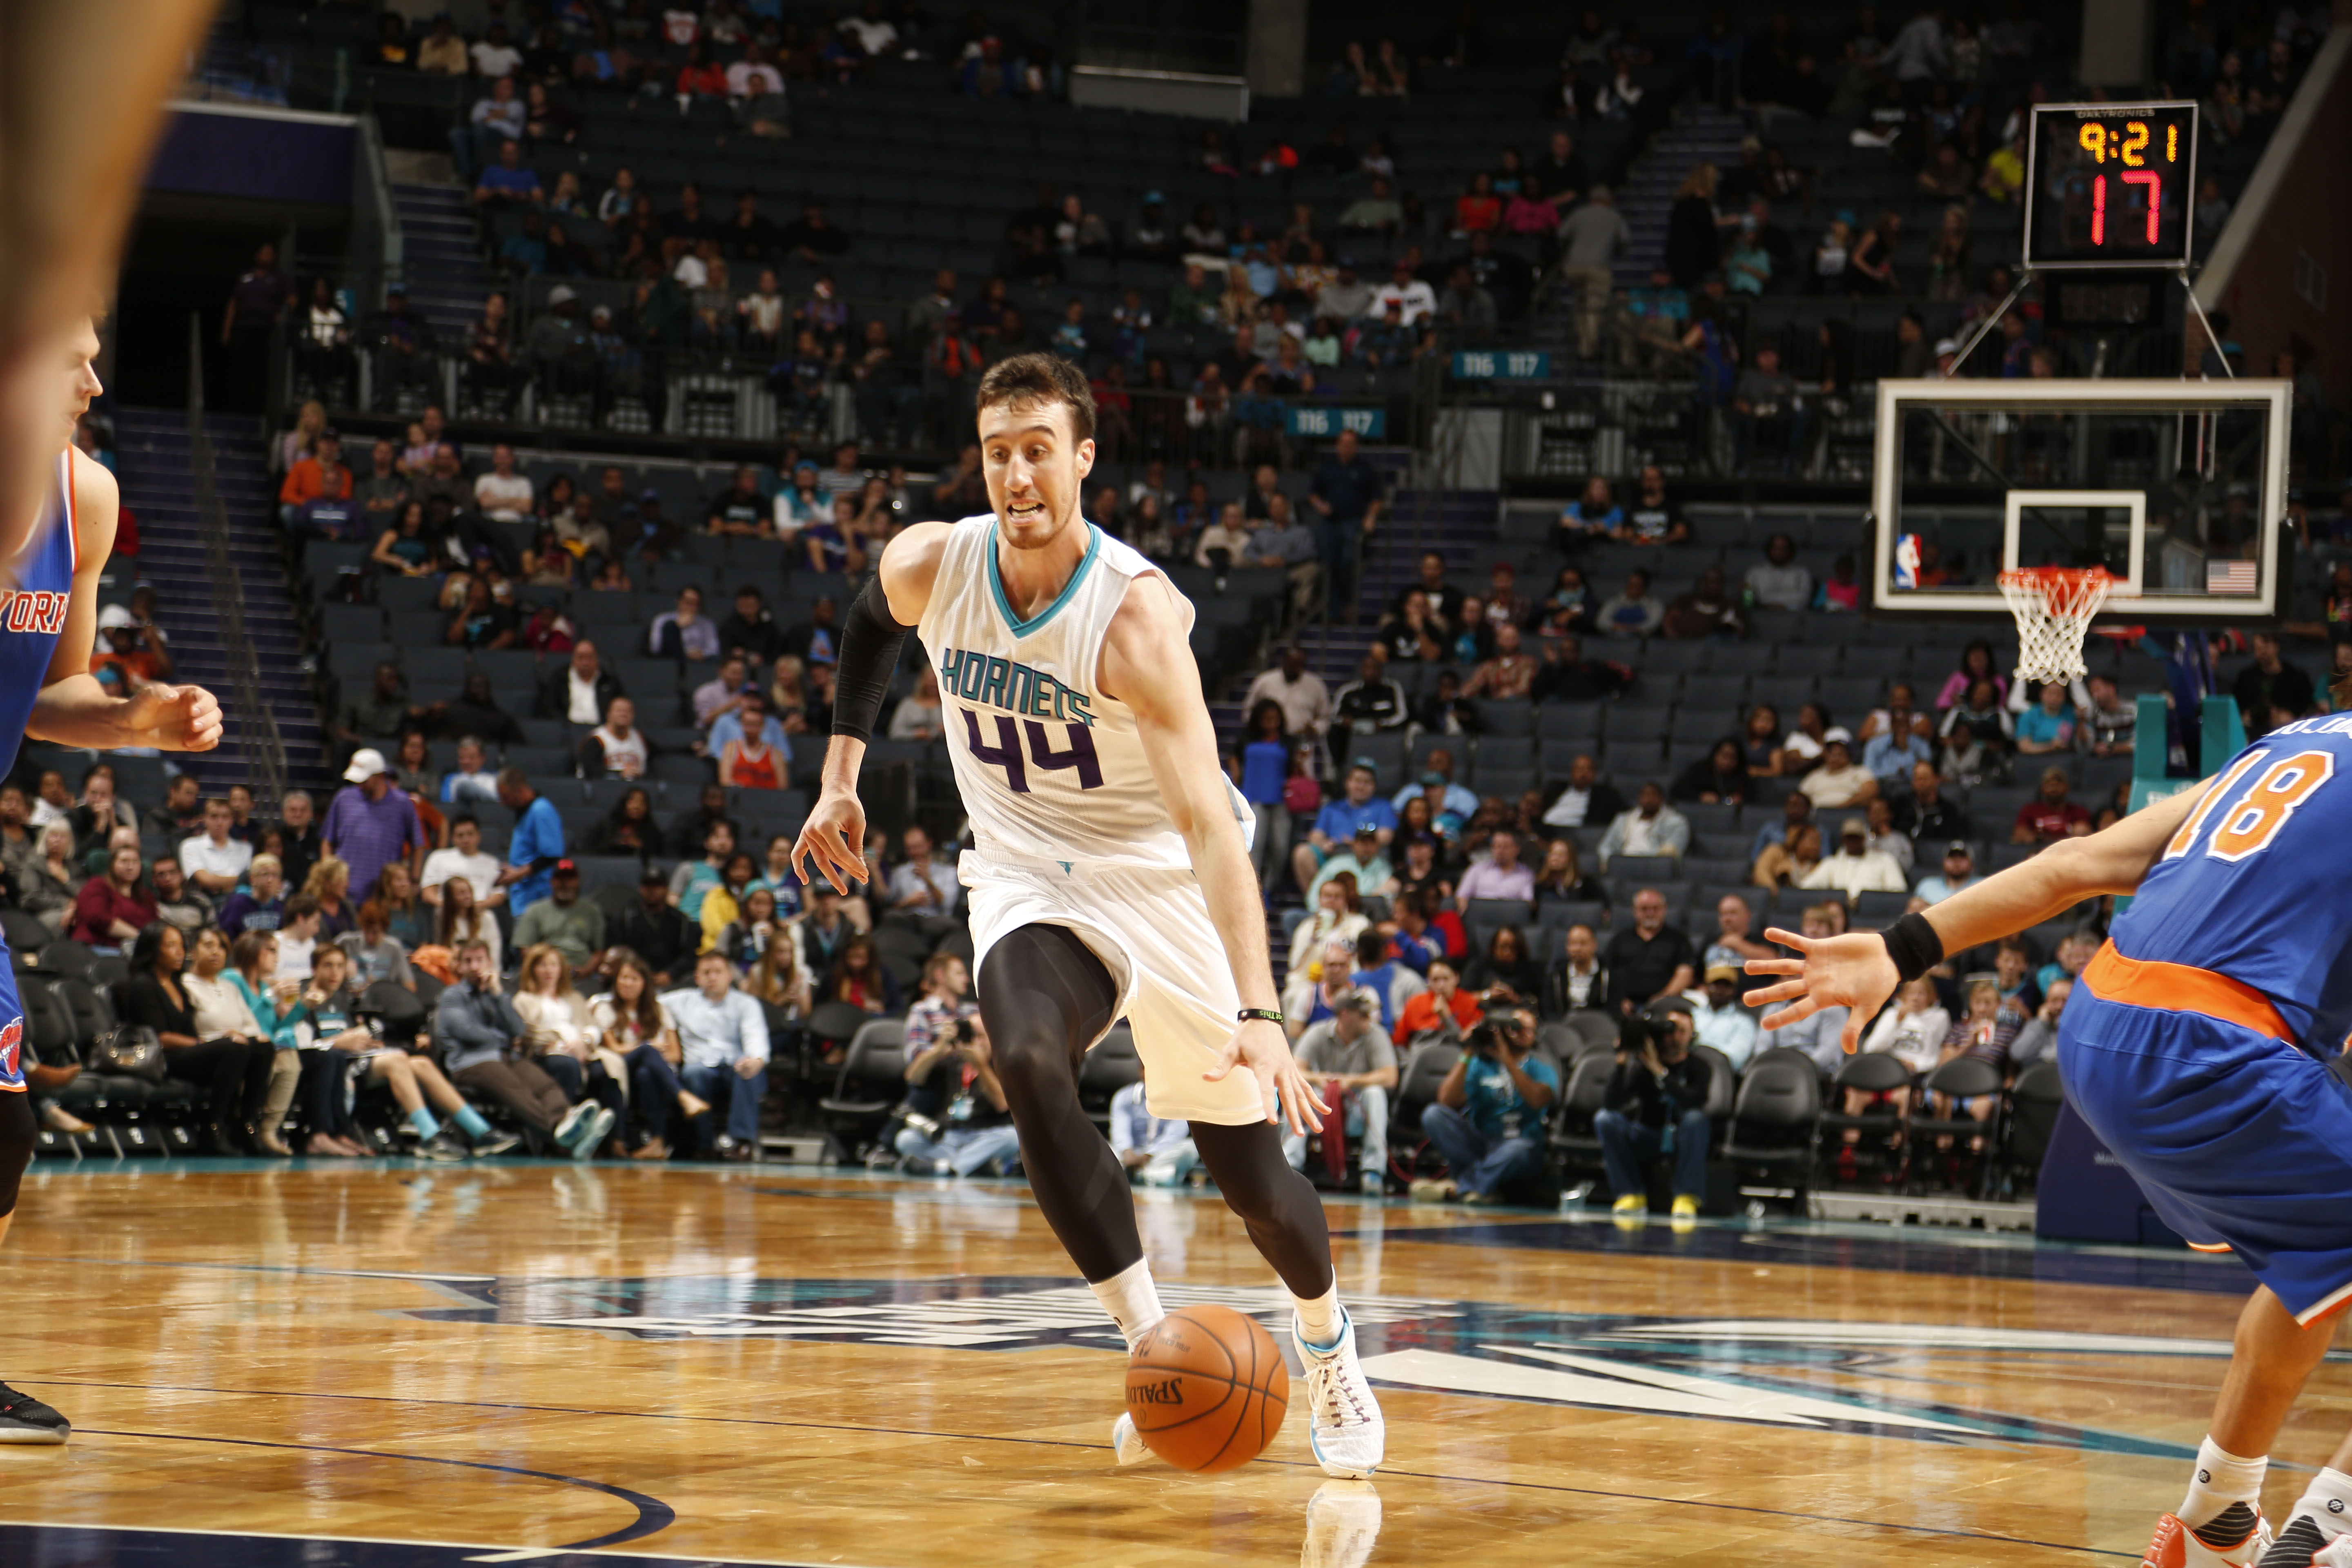 CHARLOTTE, NC - OCTOBER 17:  Frank Kaminsky III #44 of the Charlotte Hornets drives against the New York Knicks at the Time Warner Cable Arena on October 17, 2015 in Charlotte, North Carolina. (Photo by Brock Williams-Smith/NBAE via Getty Images)